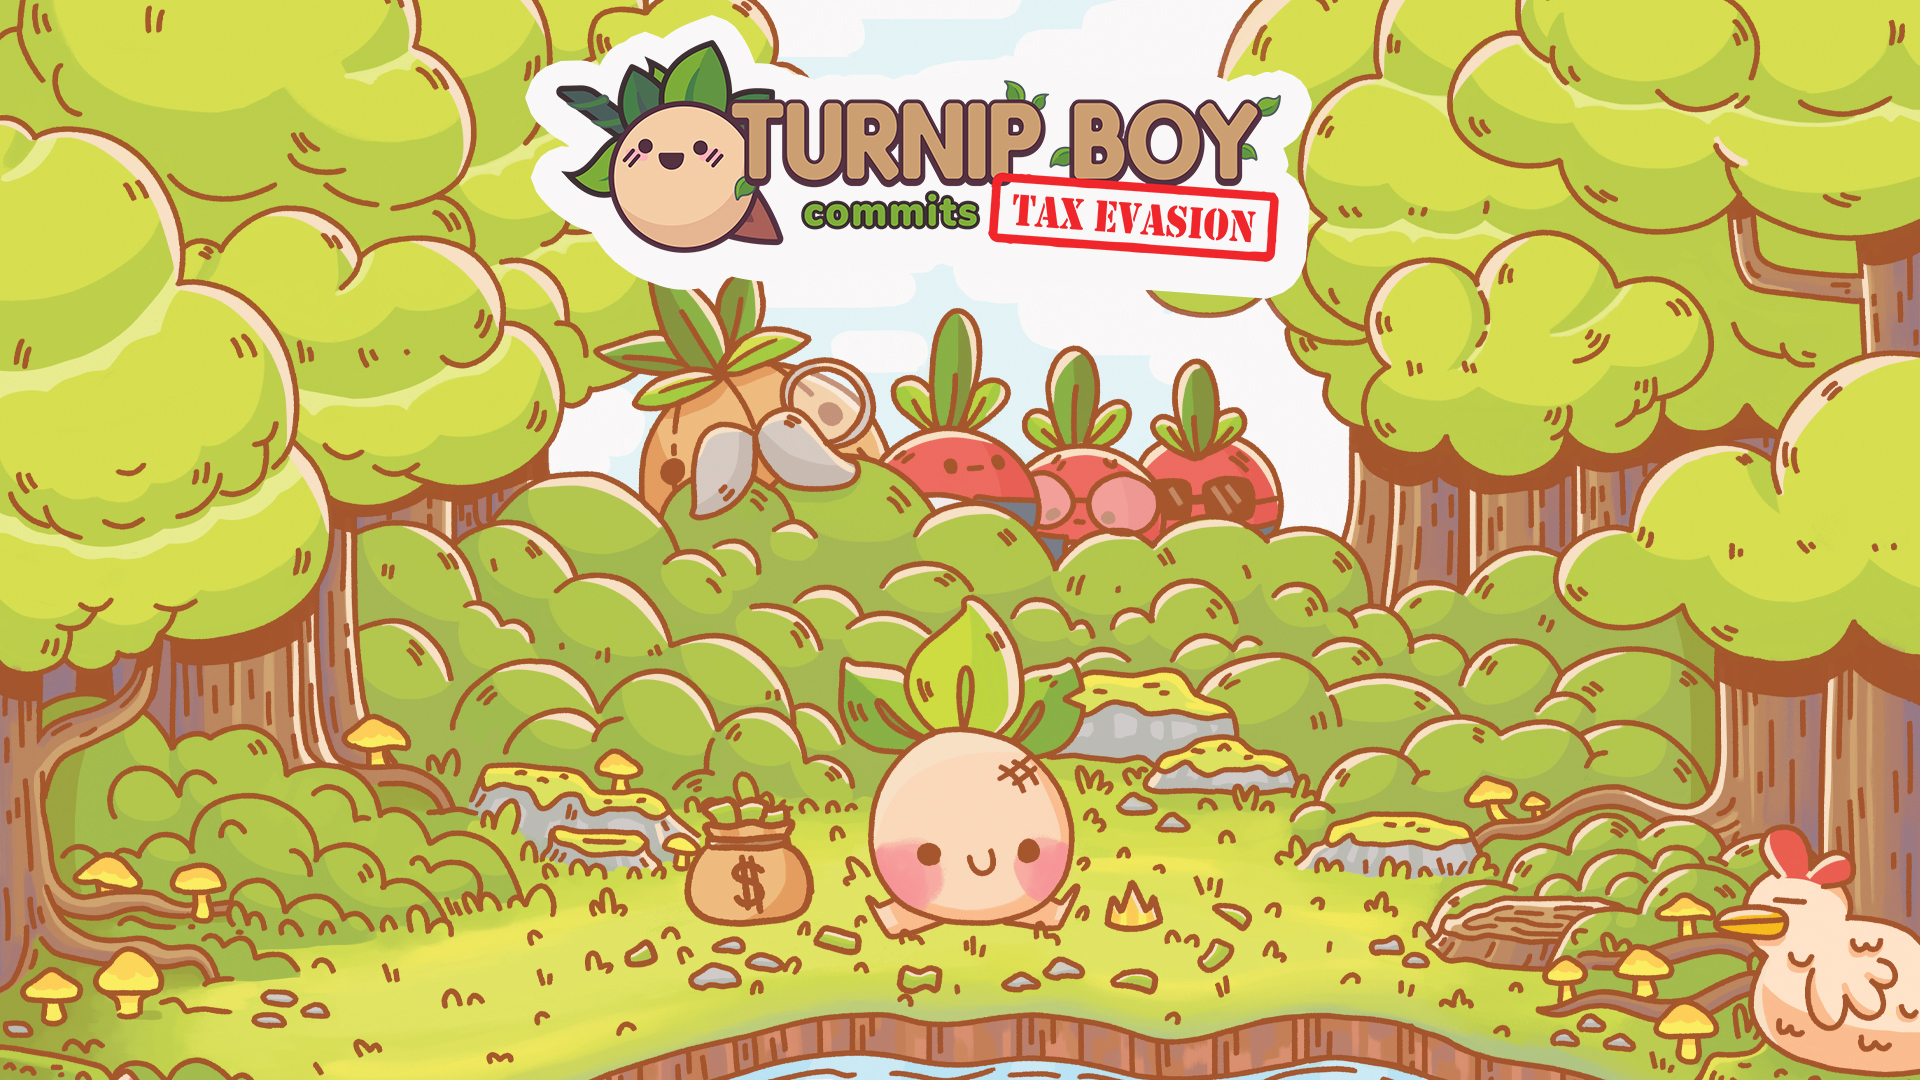 Turnip Boy Commits Tax Evasion fails to live up to the eccentricity of its name screenshot